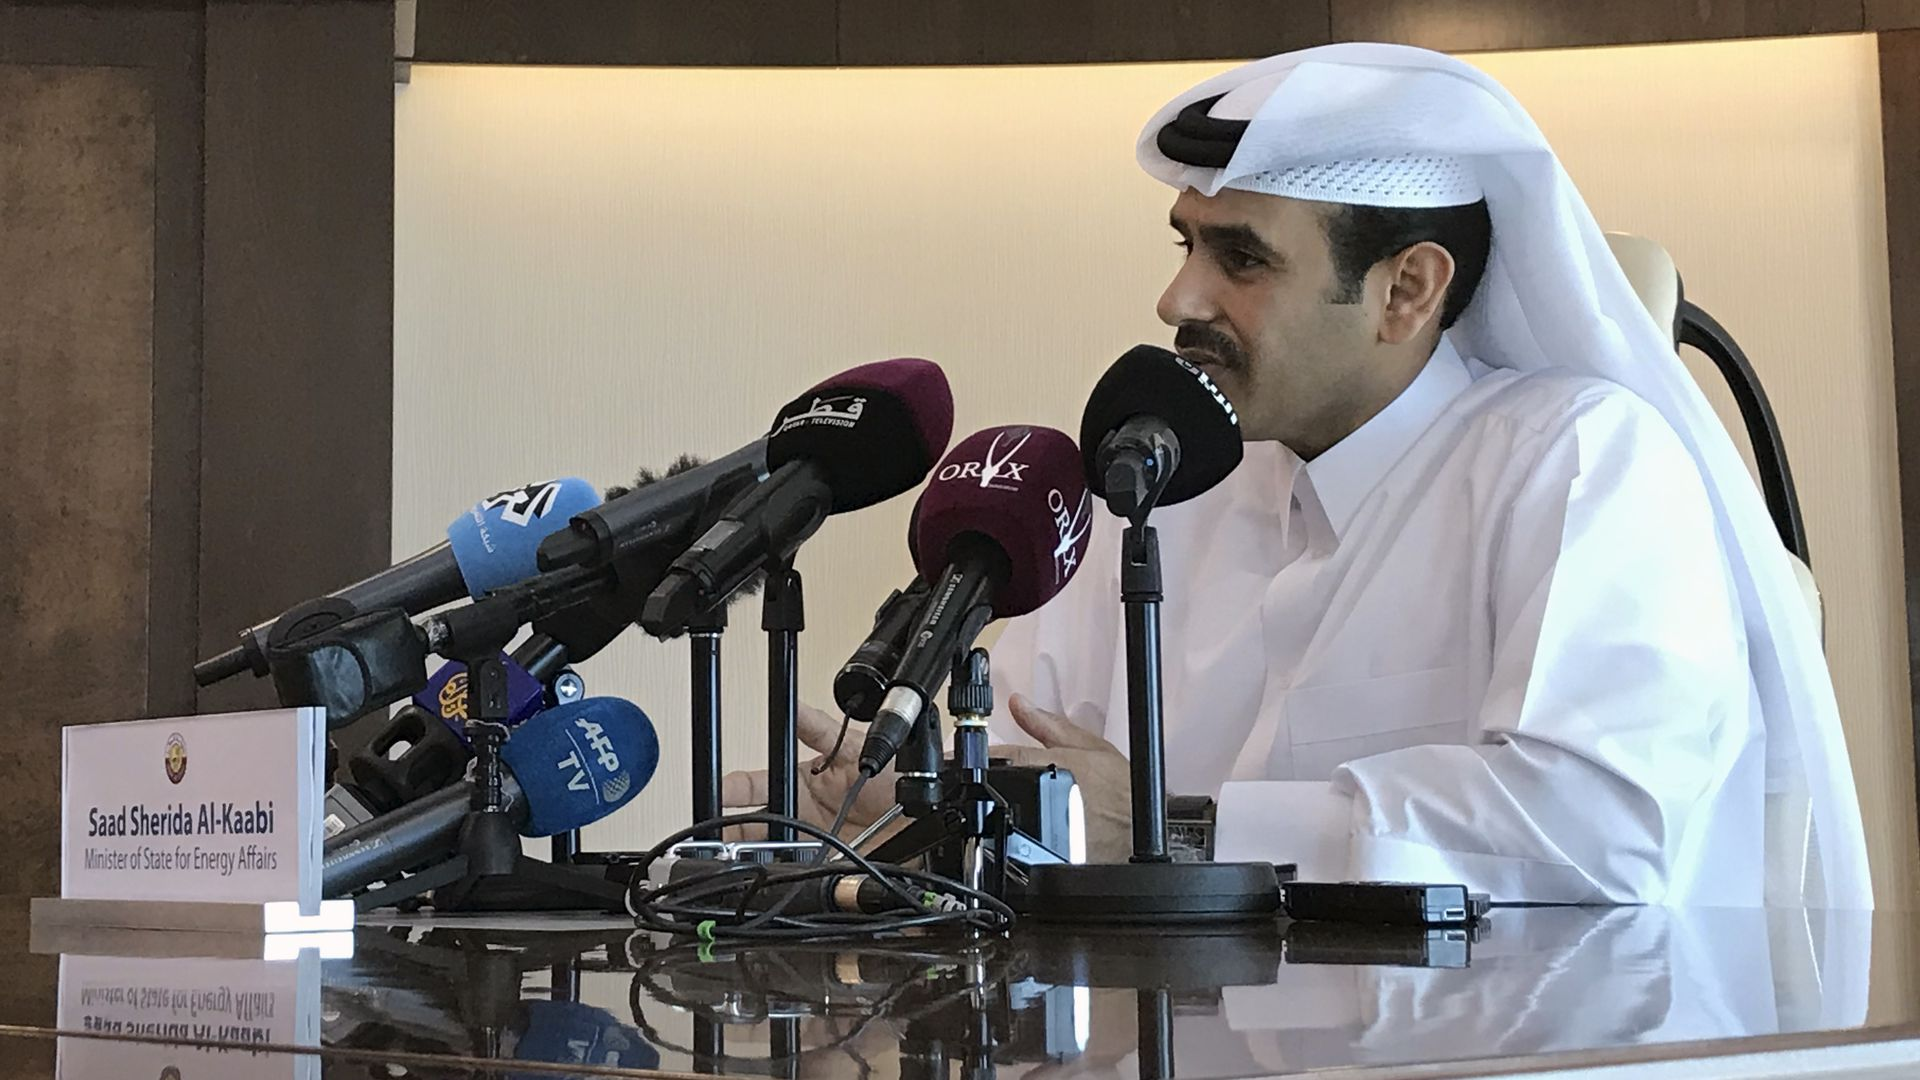 Saad Sherida Al-Kaabi, Qatari Minister of State for Energy Affairs, speaks during a press conference in the capital Doha on December 3, 2018.